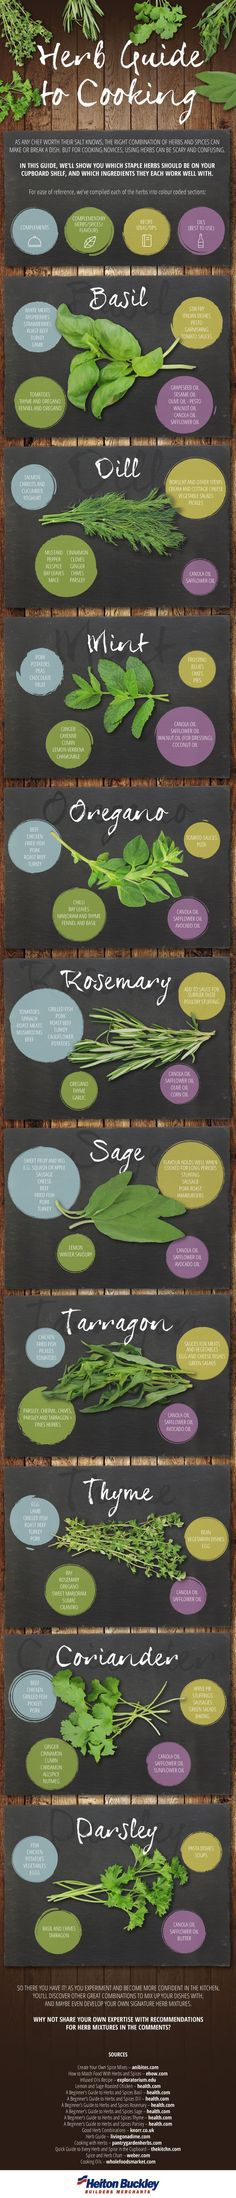 A Guide To Using Herbs When You Cook